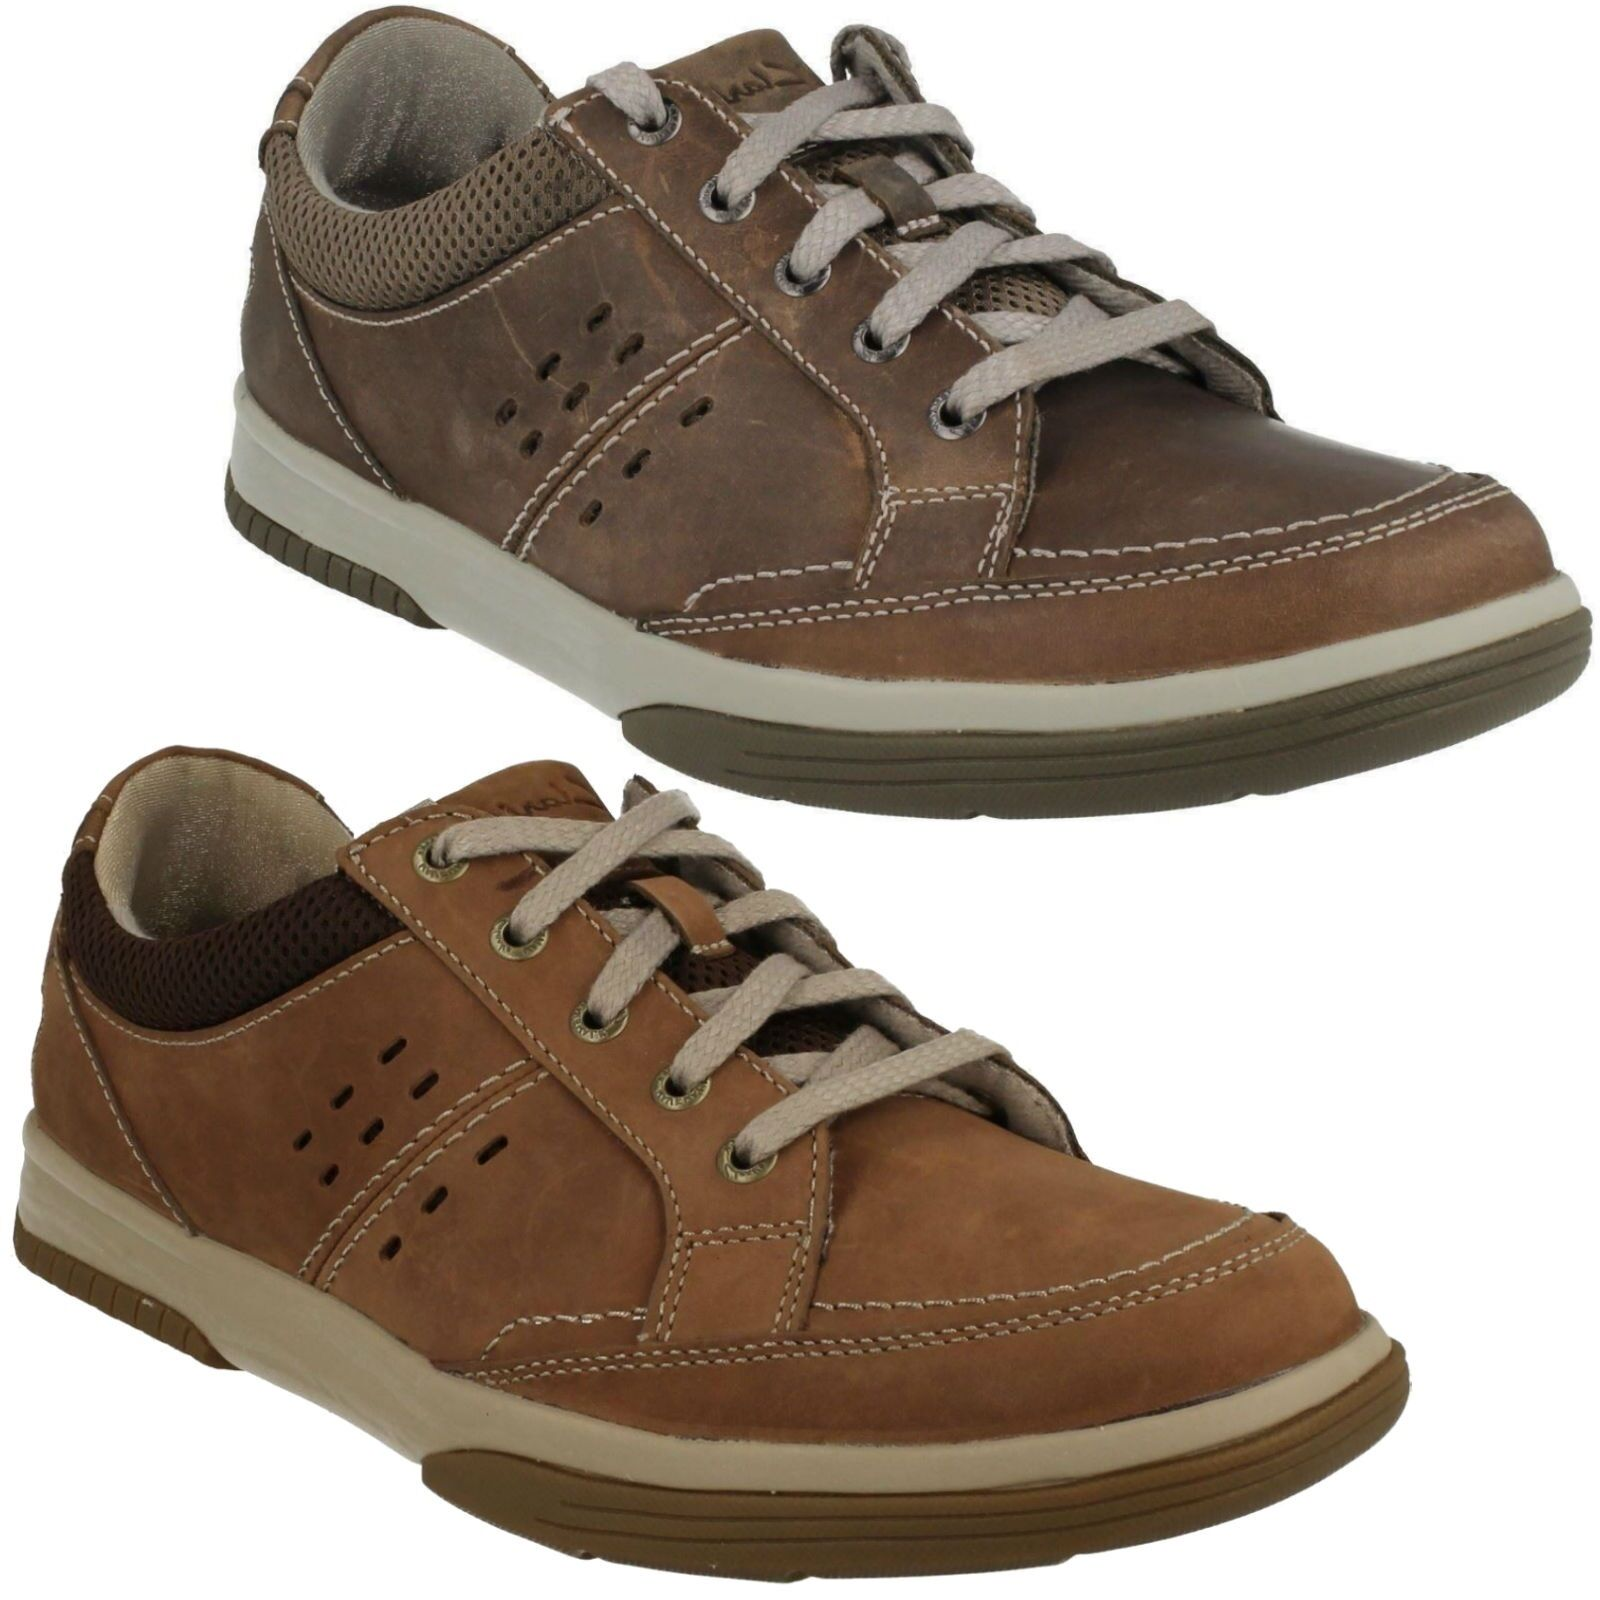 WAVECAMP PATH  Herren CLARKS LACE UP NUBUCK LIGHTWEIGHT CASUAL SPORTY WALKING Schuhe